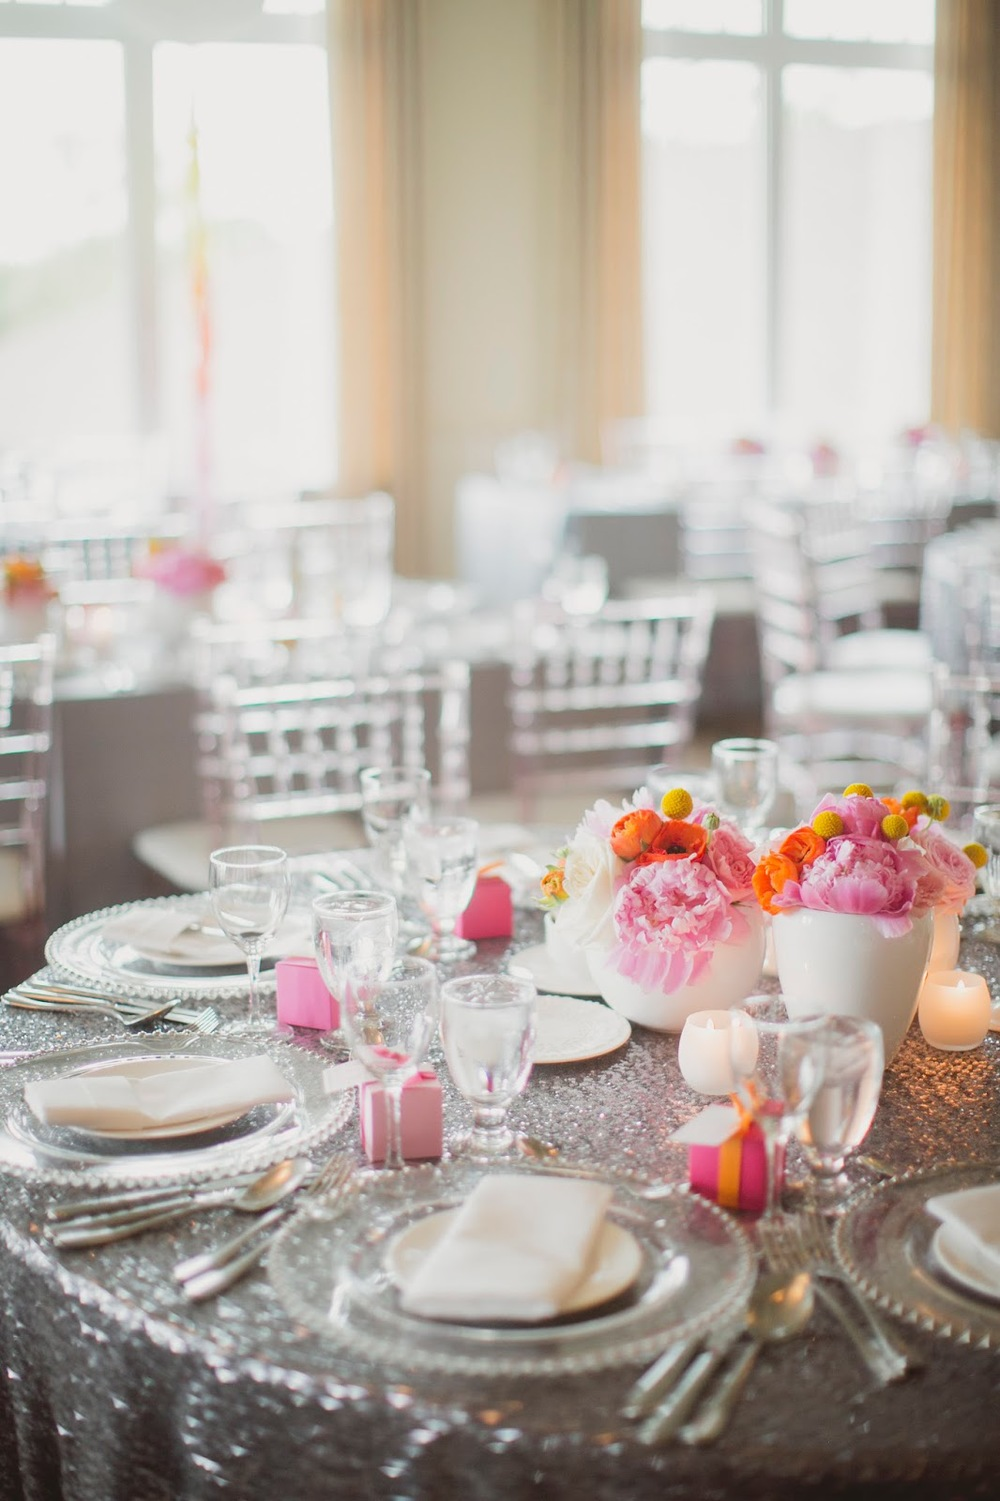 linen closet inc, sequin linens toronto hamilton burlington kj and co burlington golf and country club wedding photos oakville wedding planner, wedding table, kj and co wedding, decor and more